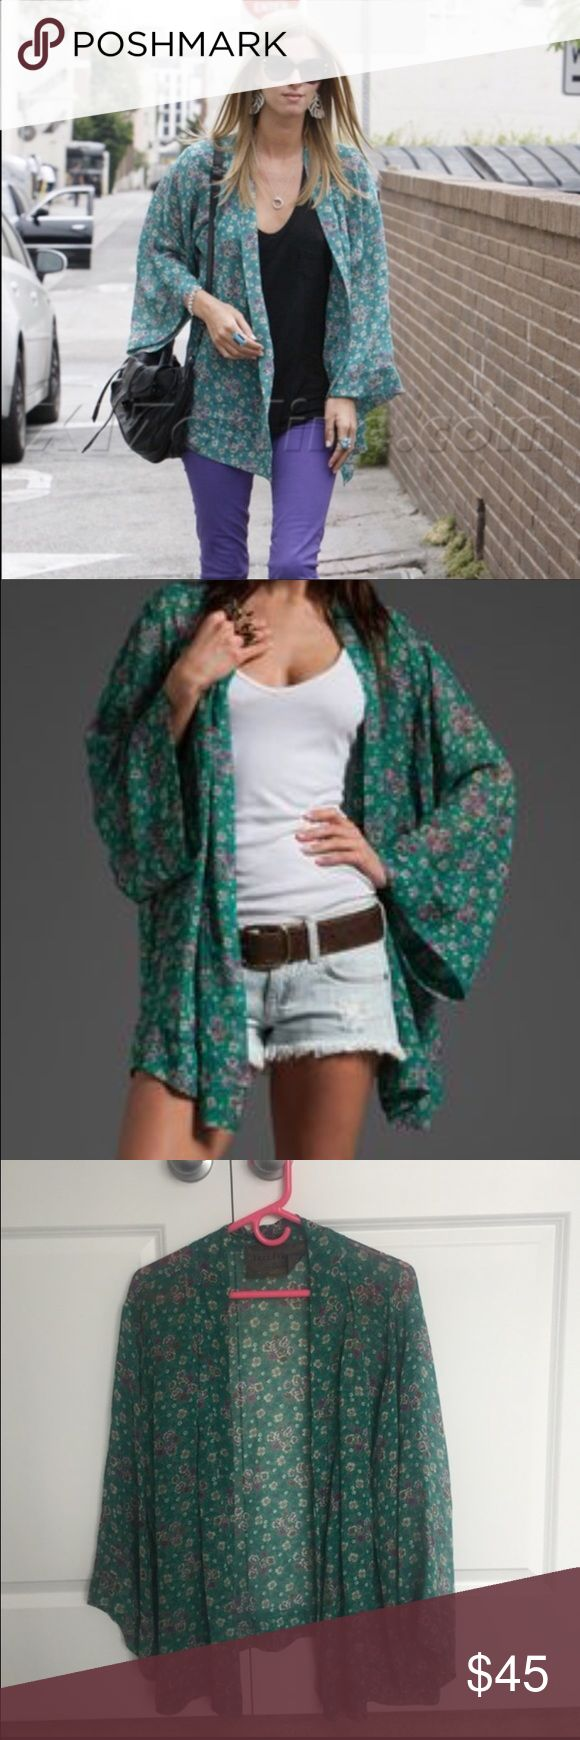 Free People x Blu Moon Jade Kimono Bohemian floral Kimono by Free People x Blu Moon collaboration. Great to pair with shorts, jeans, and dresses. Seen on celebrity  Nicky Hilton. Free People Tops